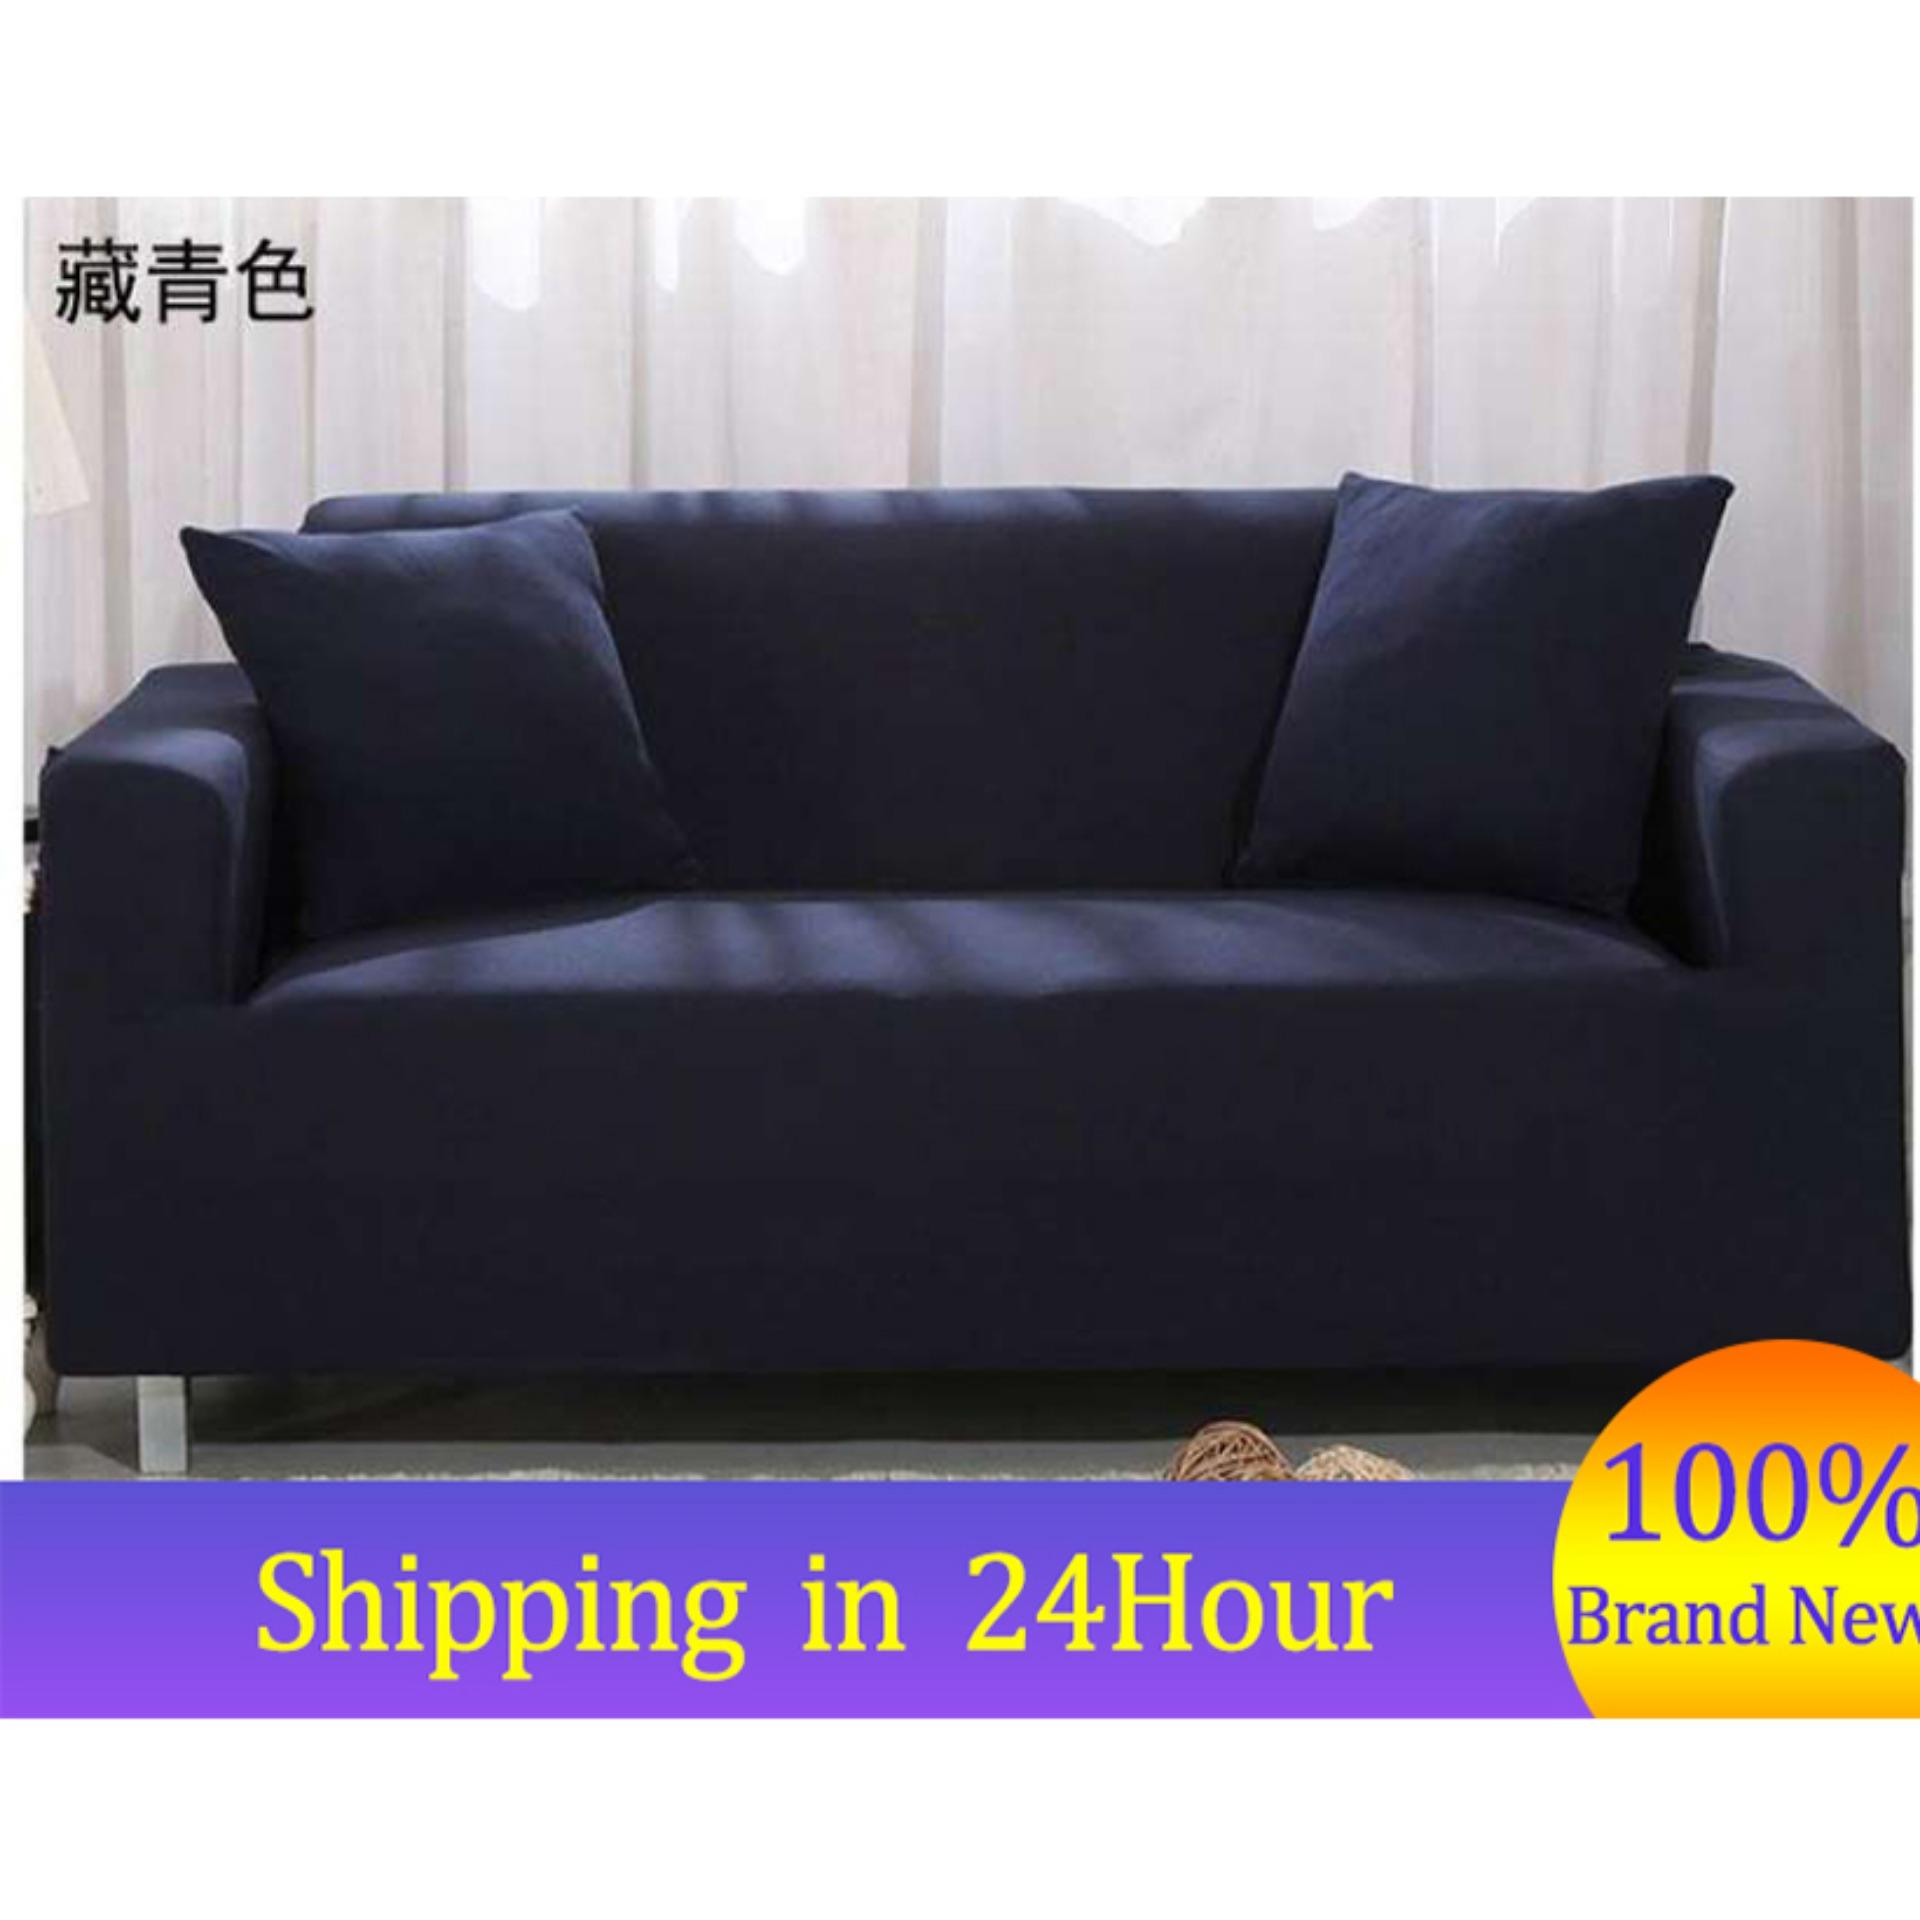 Sectional Sofa Price Philippines: Living Room Furniture Prices